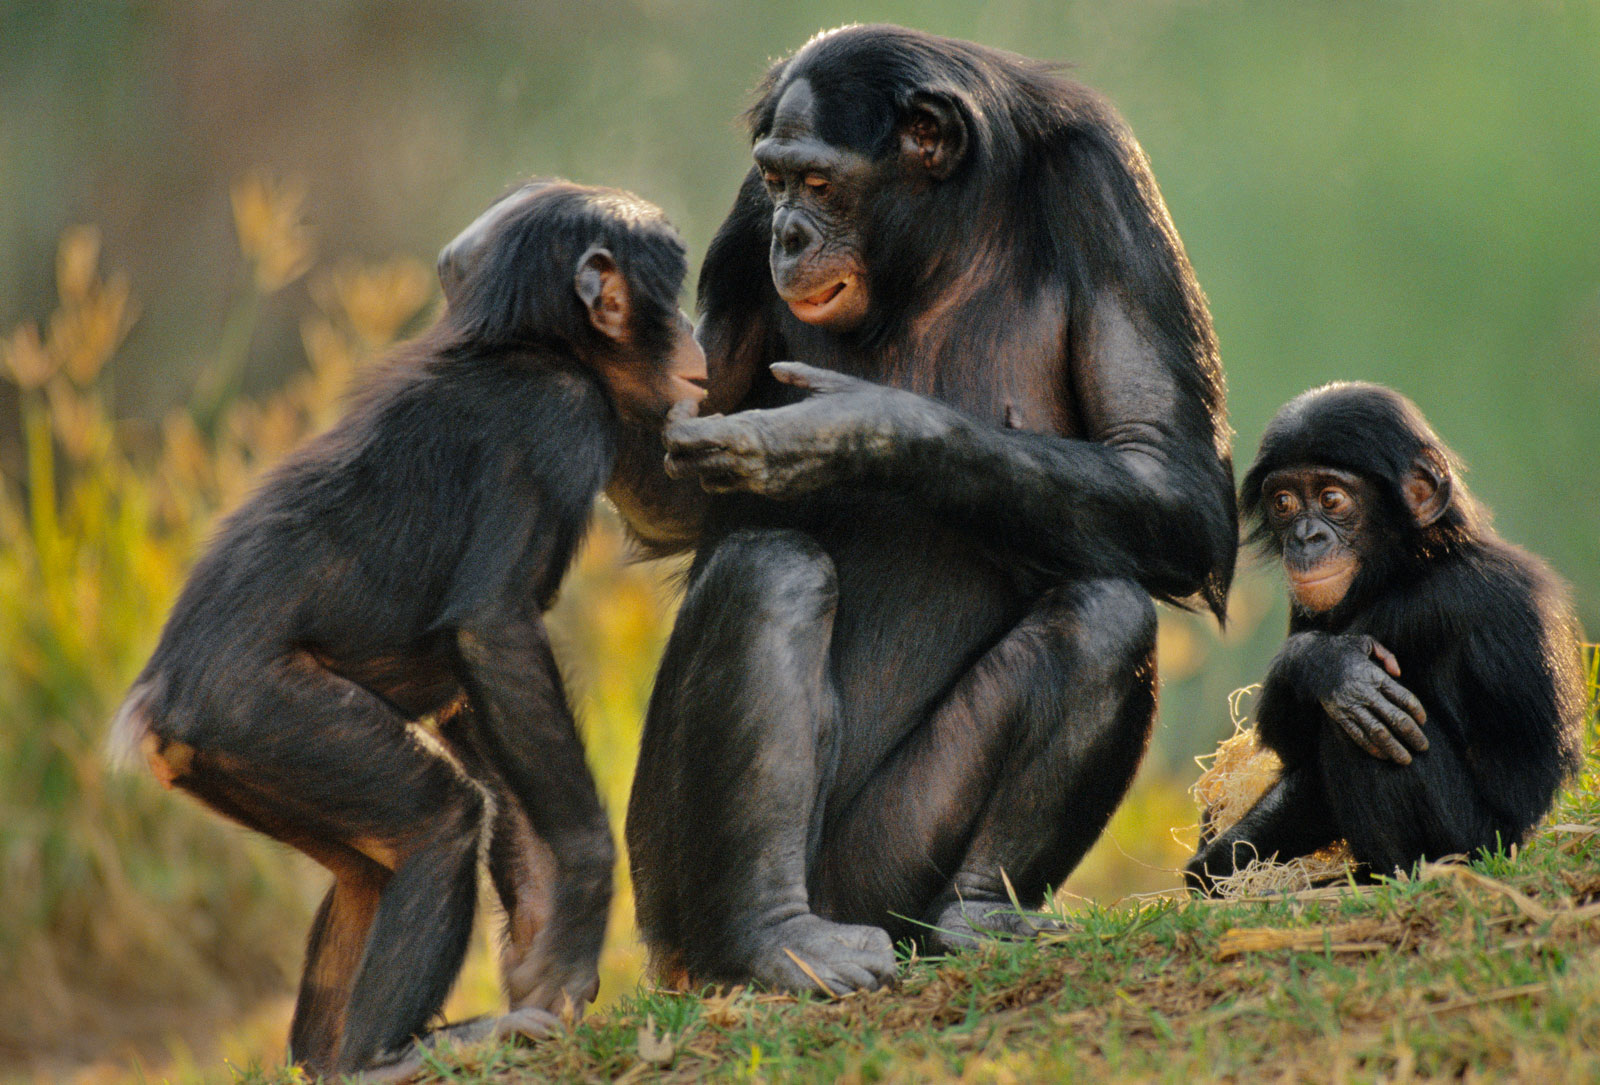 Bonobo female sharing food with infants, native to Congo (DRC)